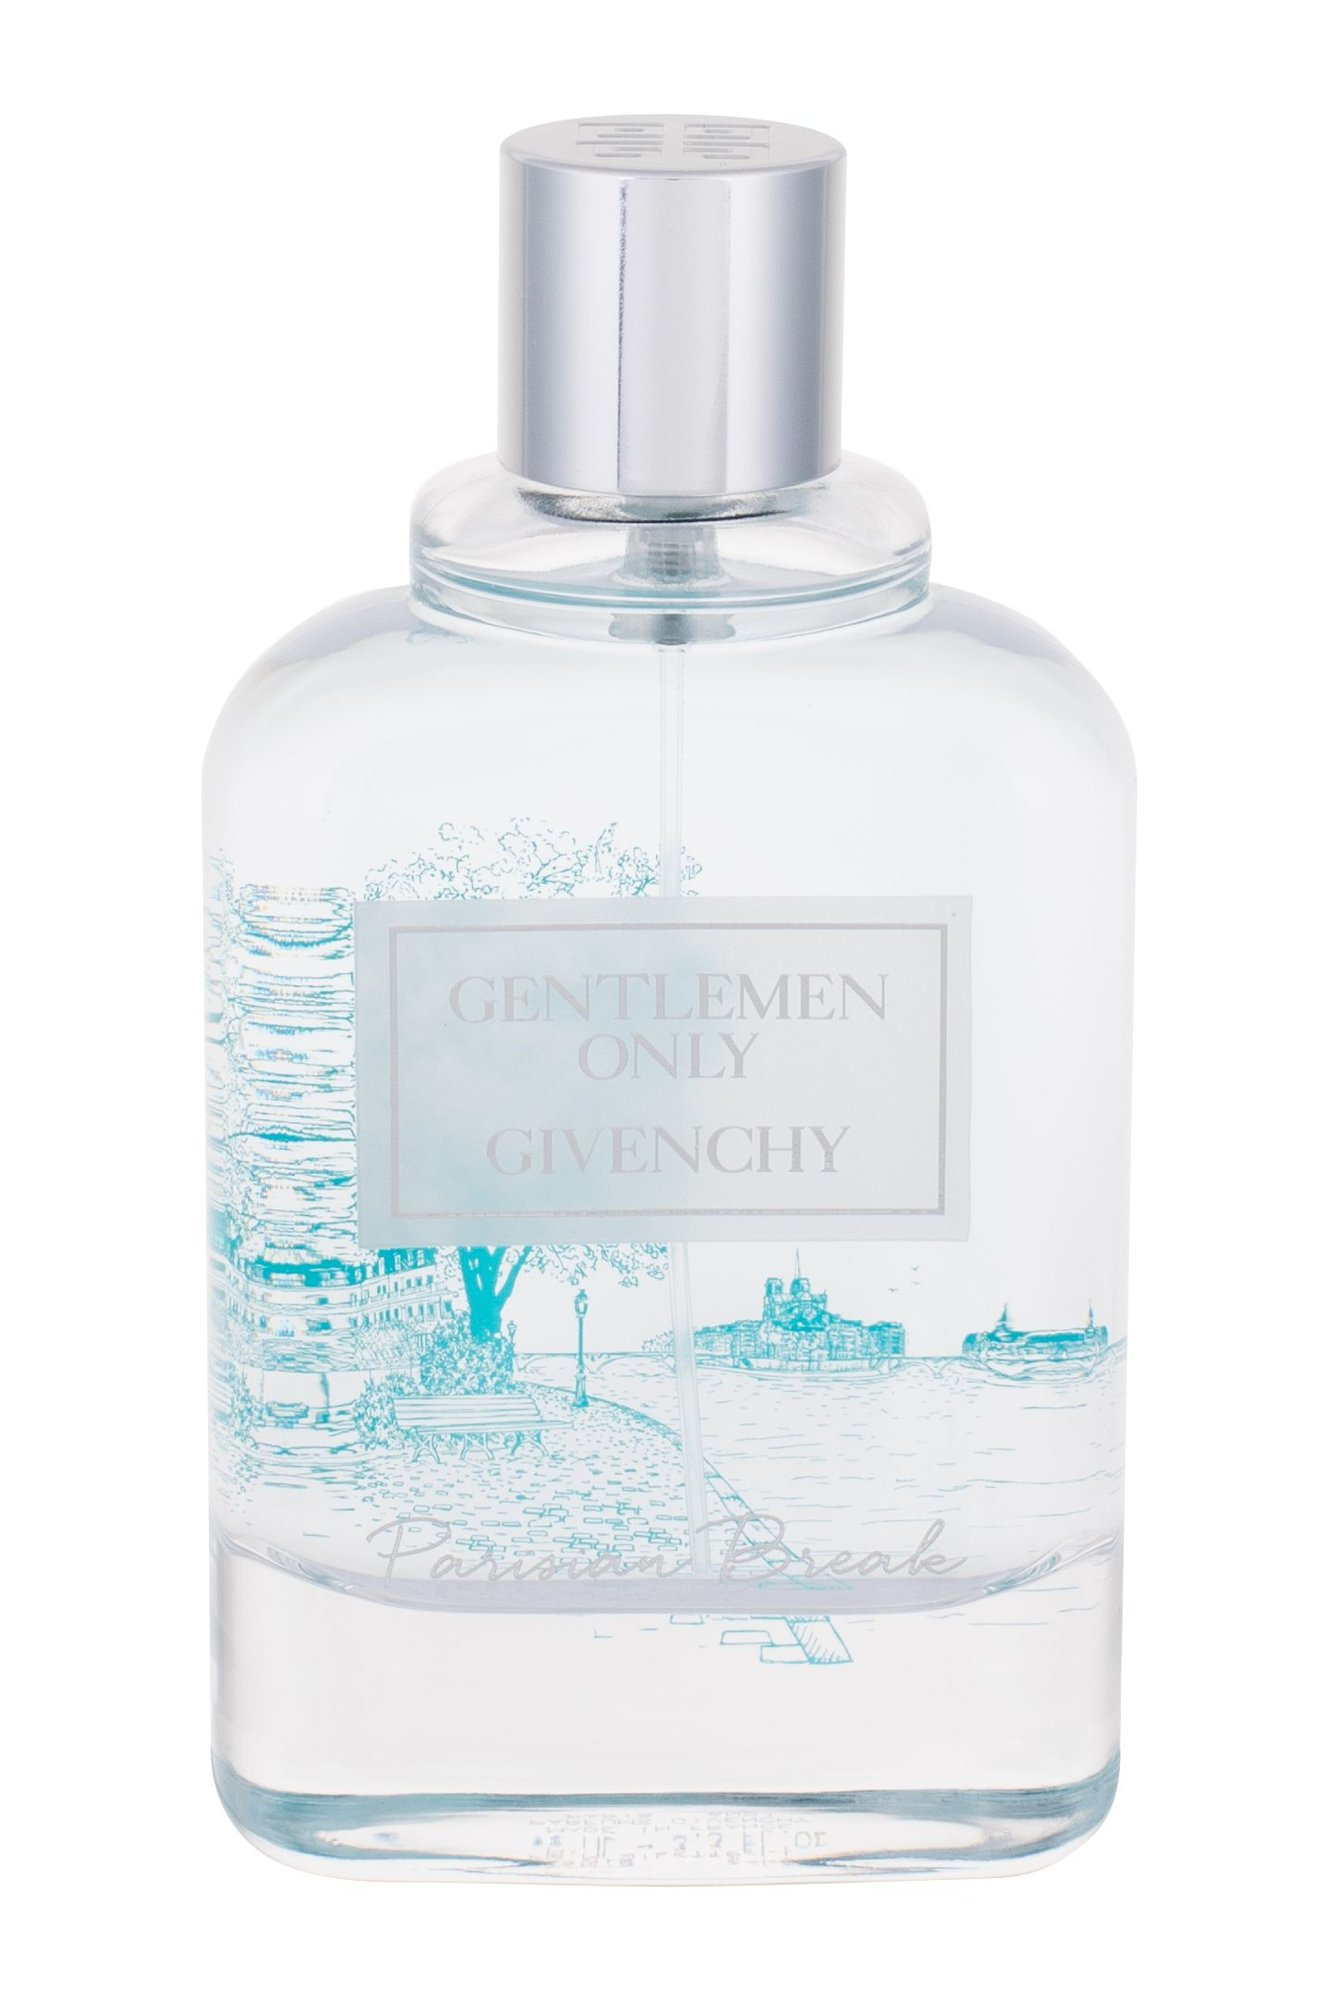 Givenchy Gentlemen Only Parisian Break, Toaletní voda 100ml